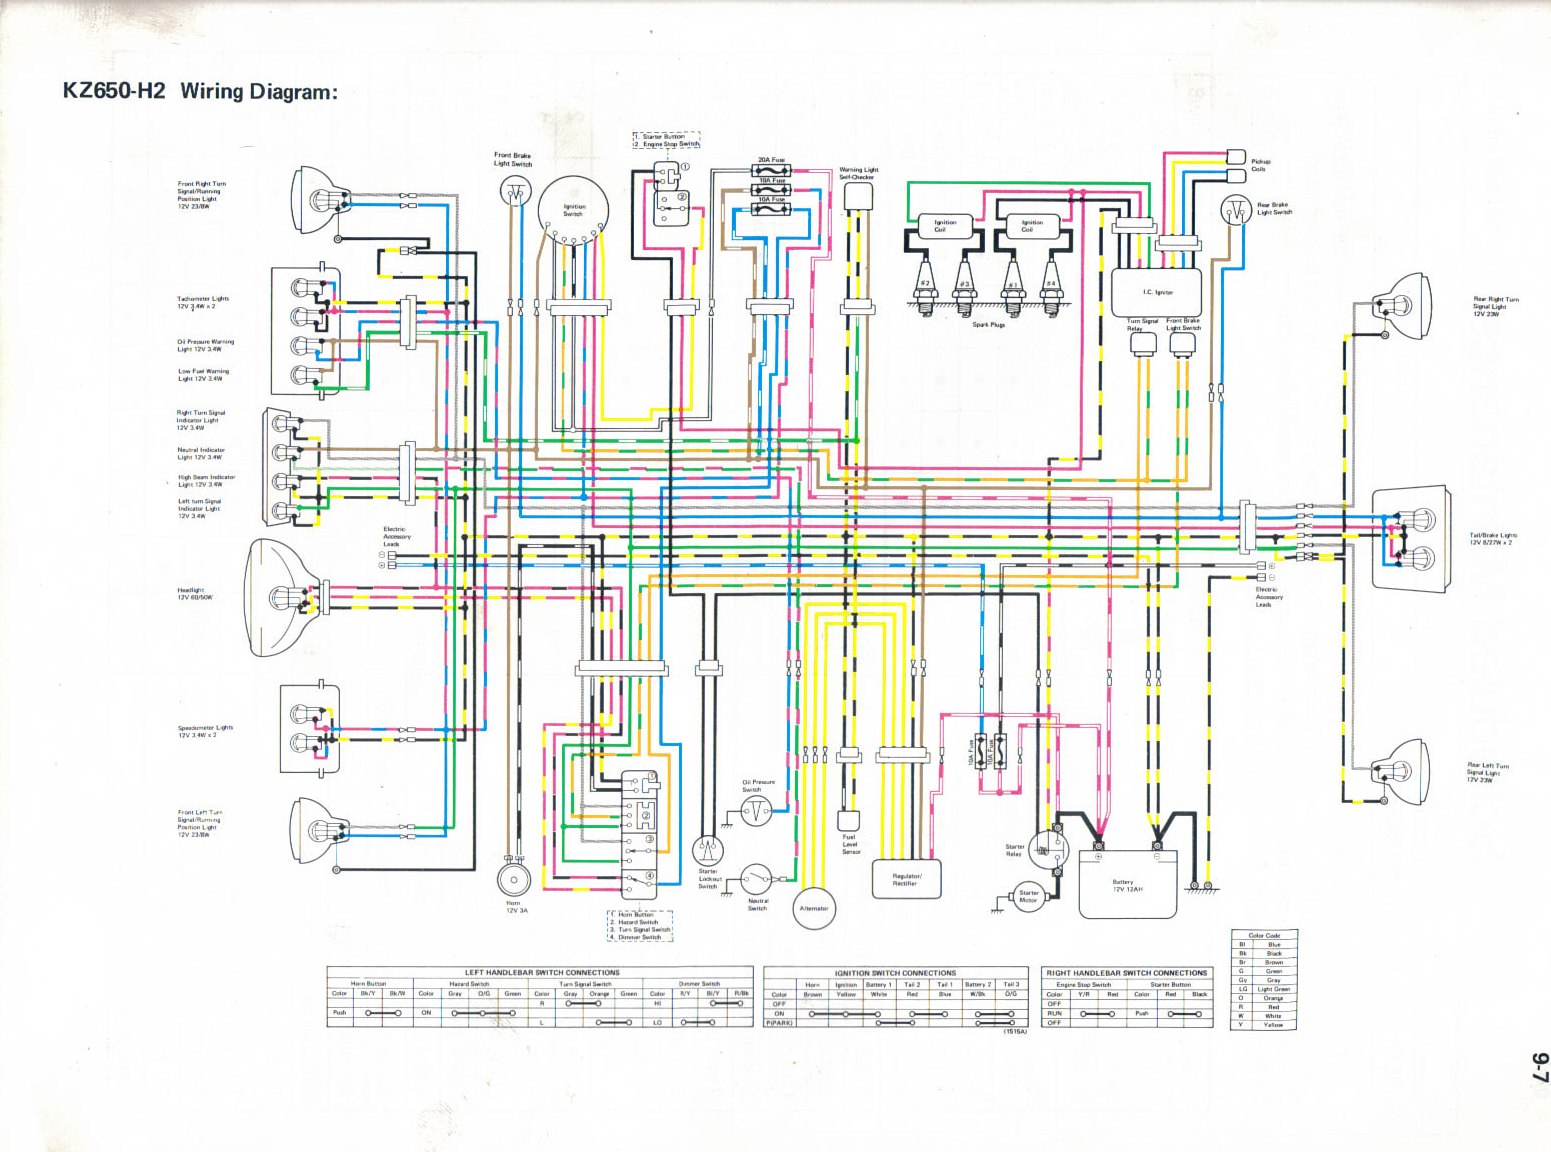 1978 kz650 wiring diagram schematic 80 kz650 wiring diagram #15